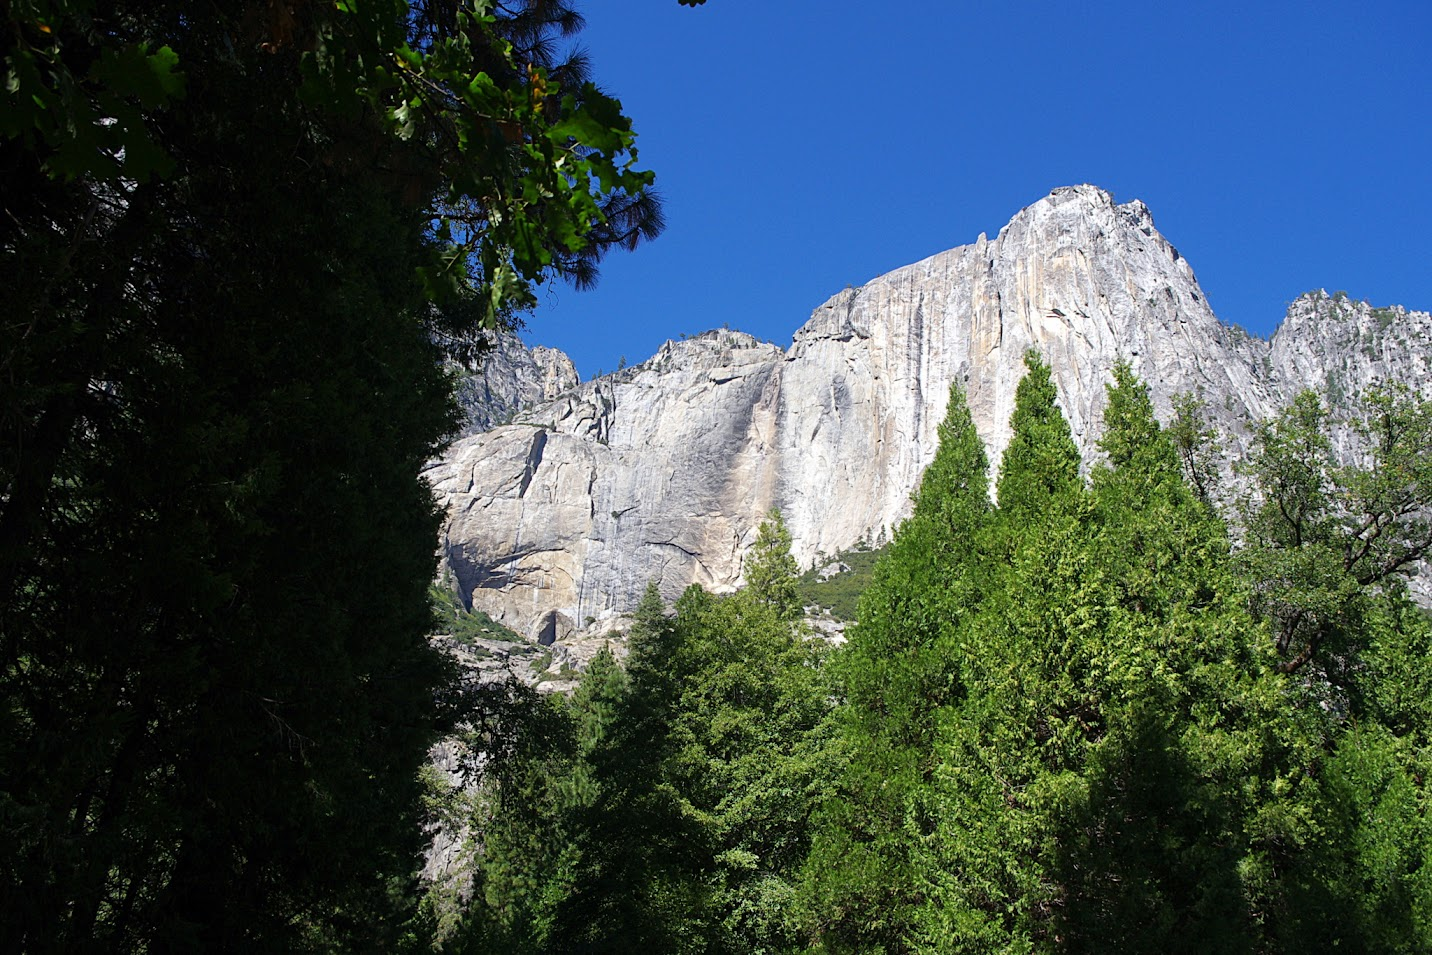 Valle de Yosemite, Lower Yosemite Falls